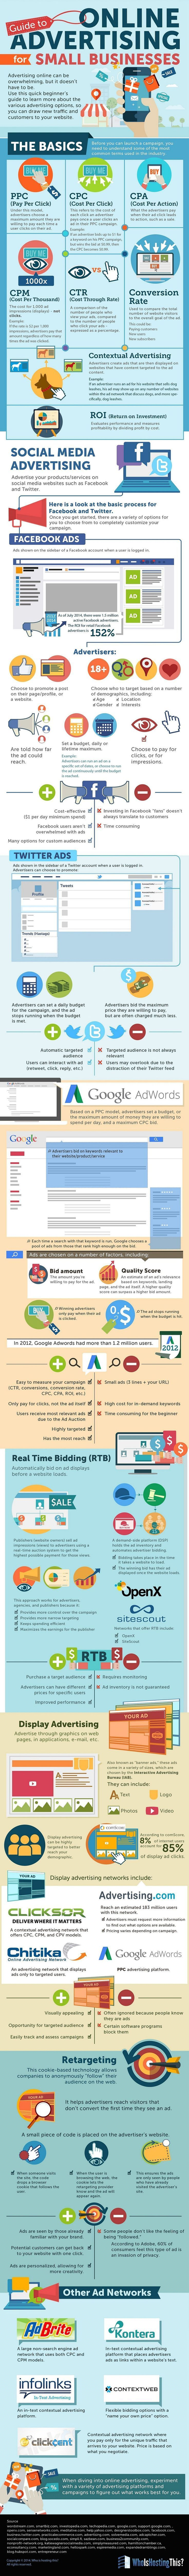 awesome Guide To Online Advertising For Small Businesses - #infographic - Love a good success story? Learn how I went from zero to 1 million in sales in 5 months with an e-commerce store.